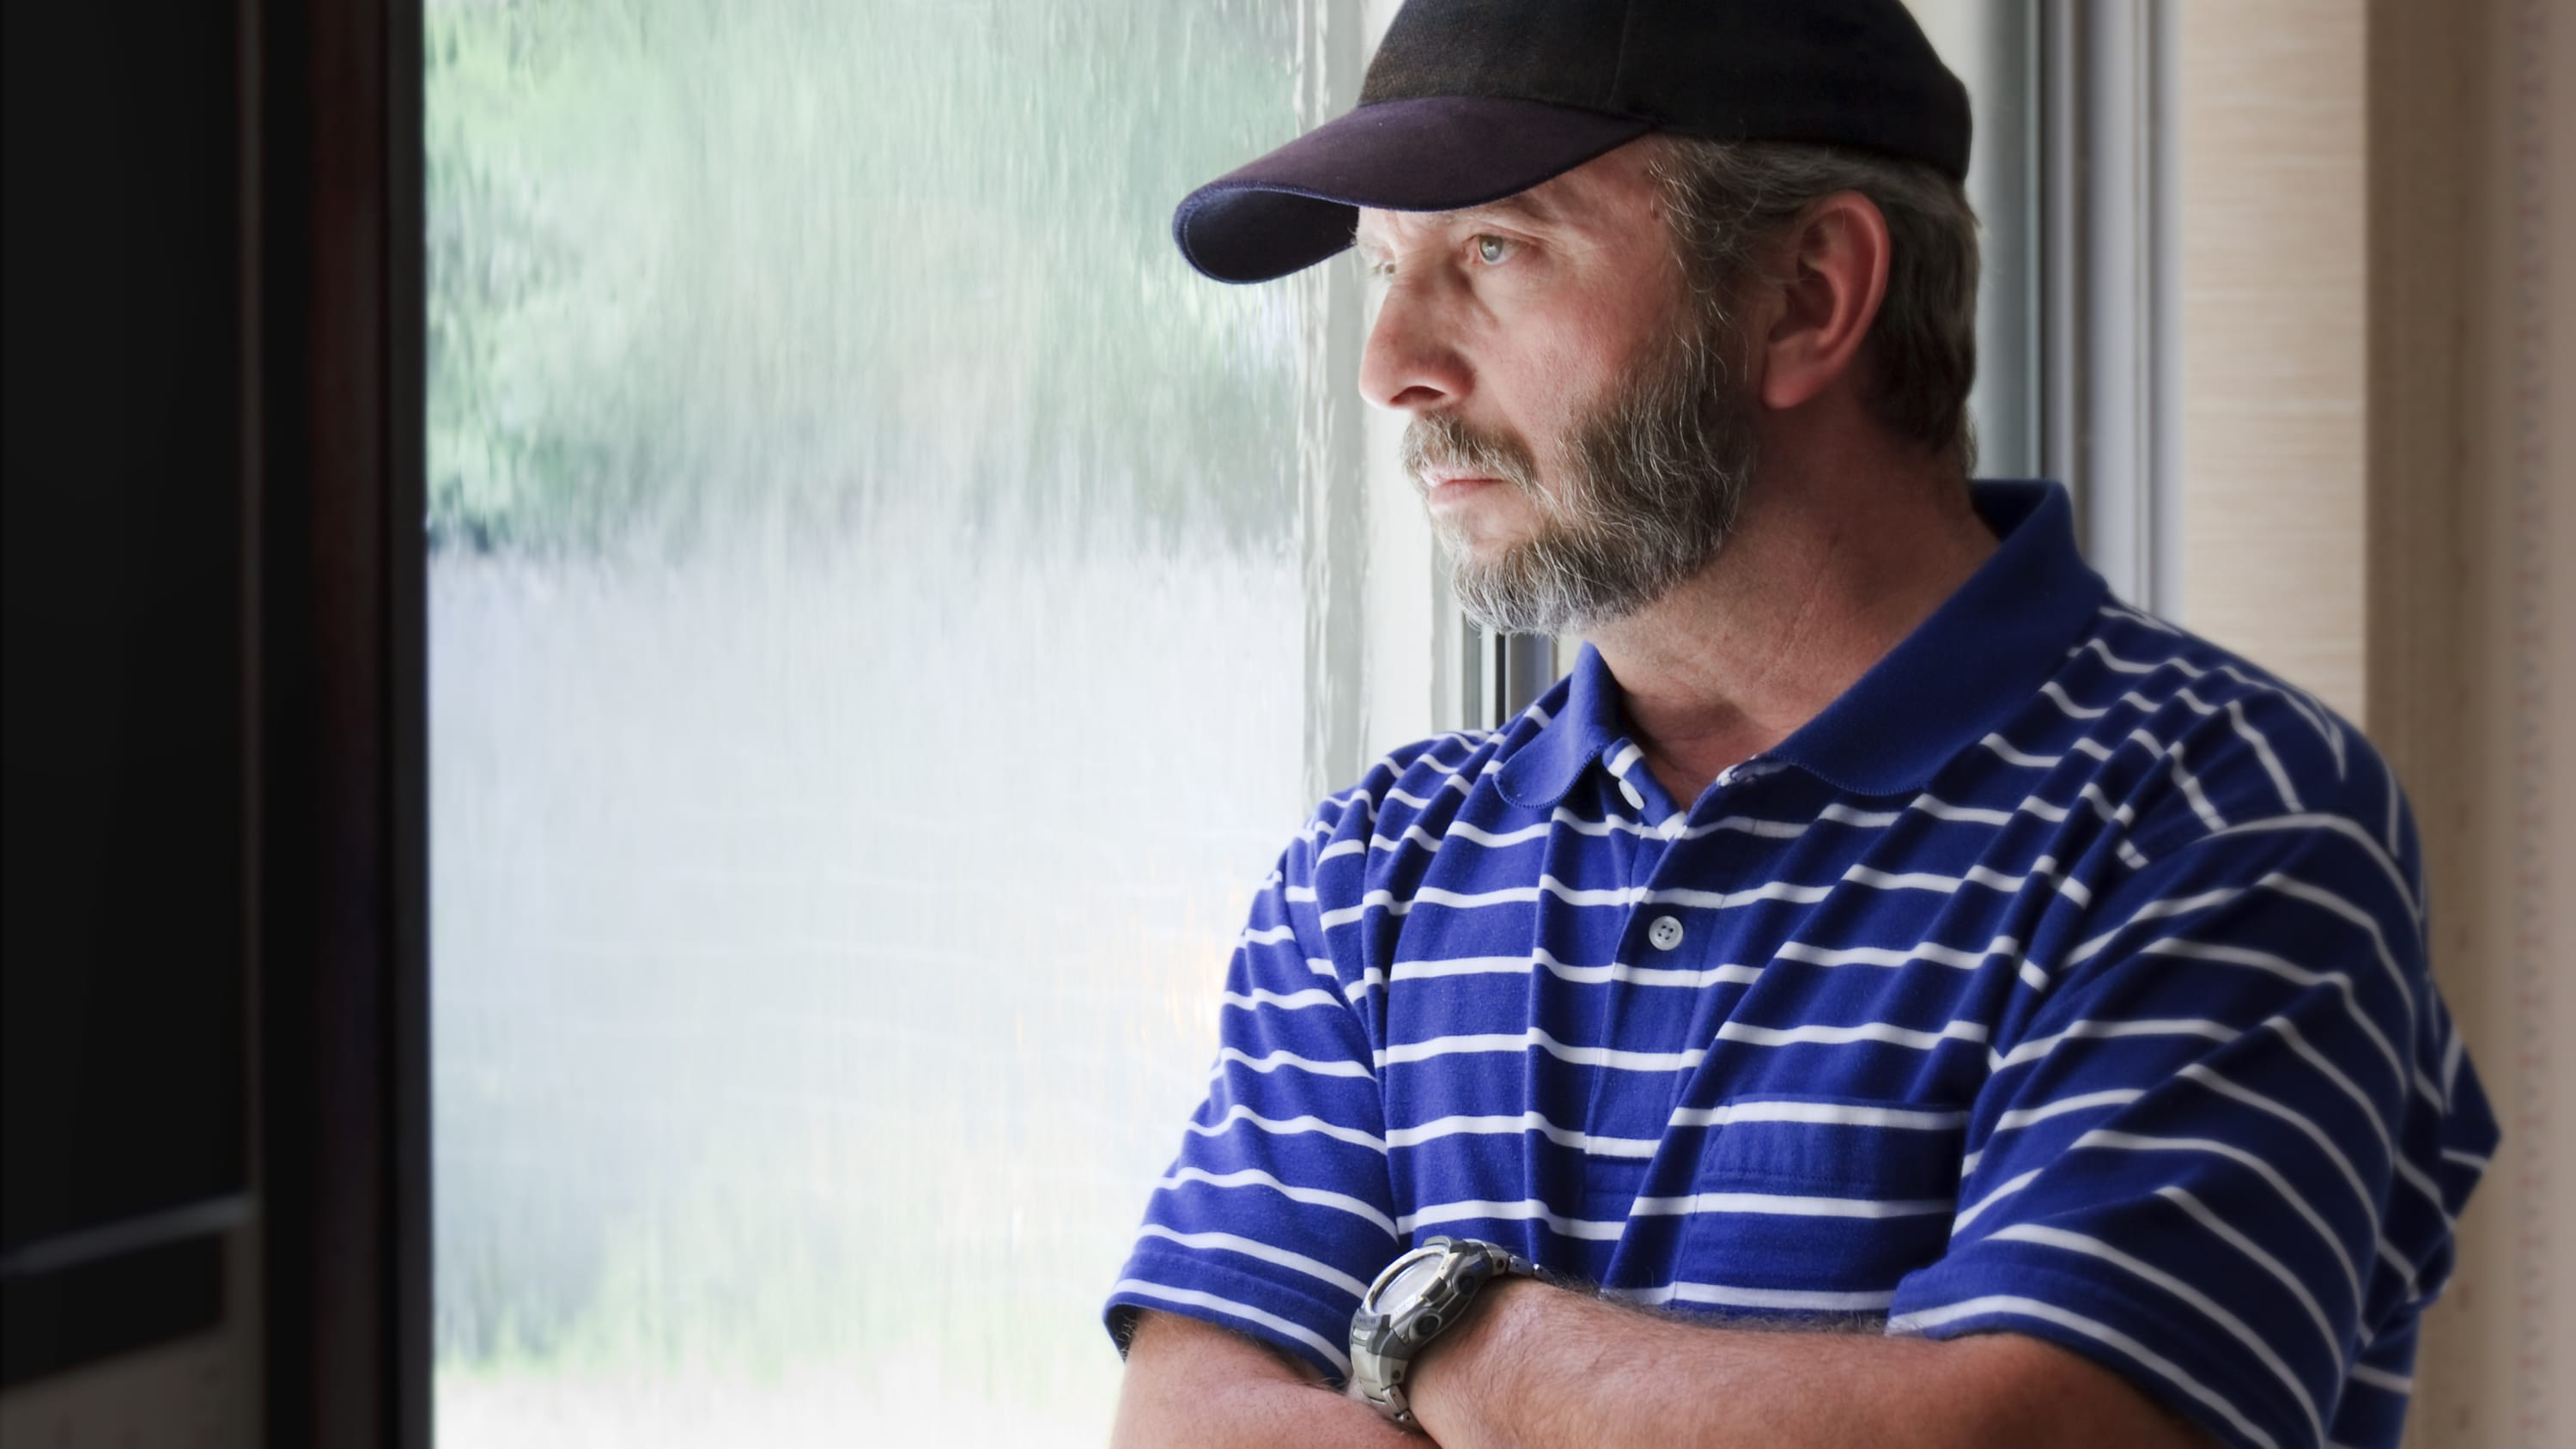 Adult male looking out a rain covered window looking concerned, possibly about a gambling disorder